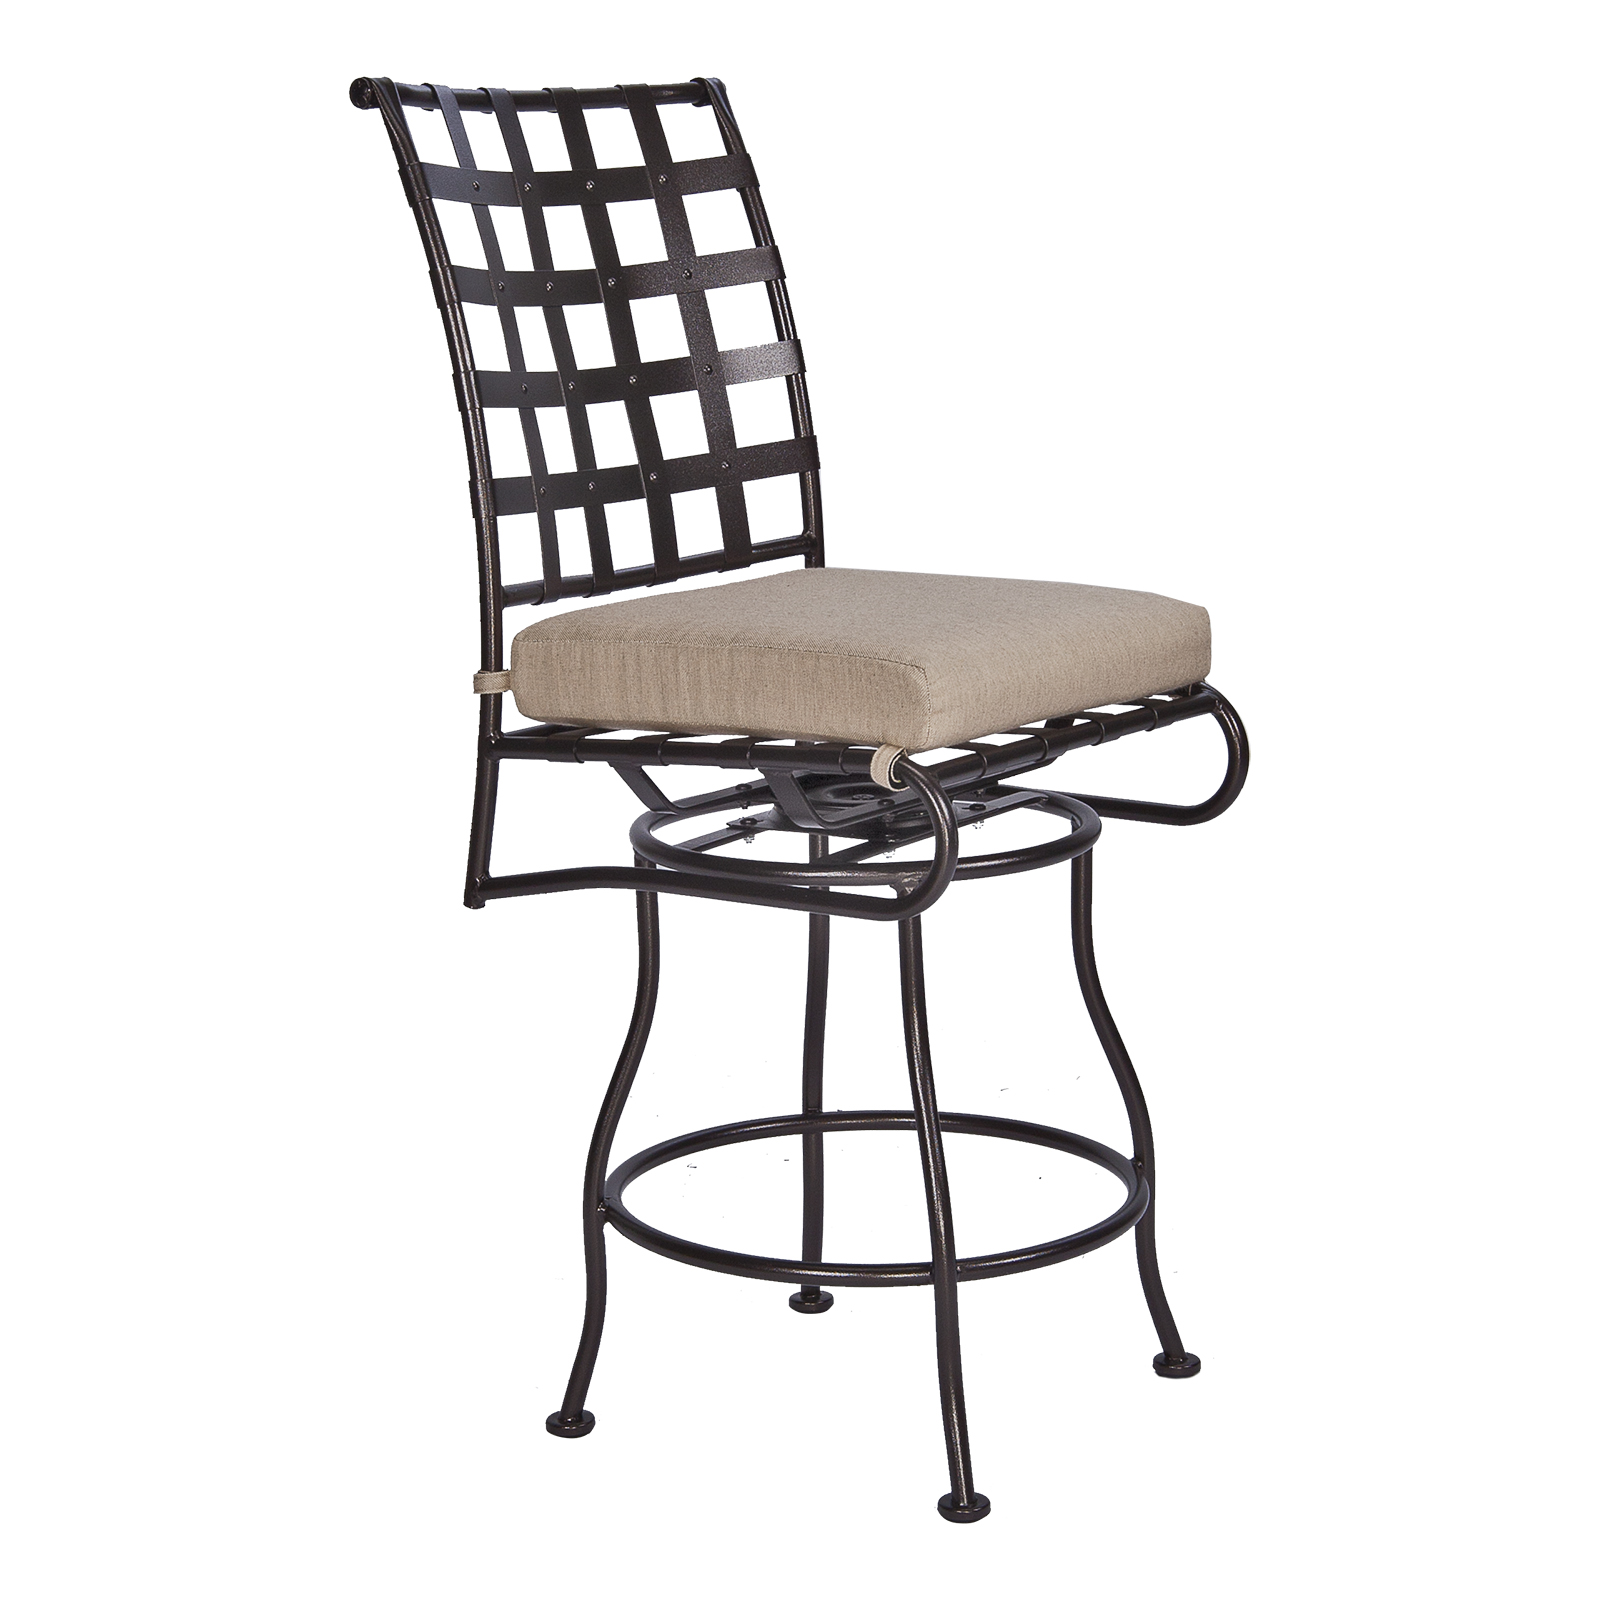 Swivel-Counter-Stool-With-No-Arms-951-SCS_Catalog_GR35_1600-Classico-W-OW-Lee